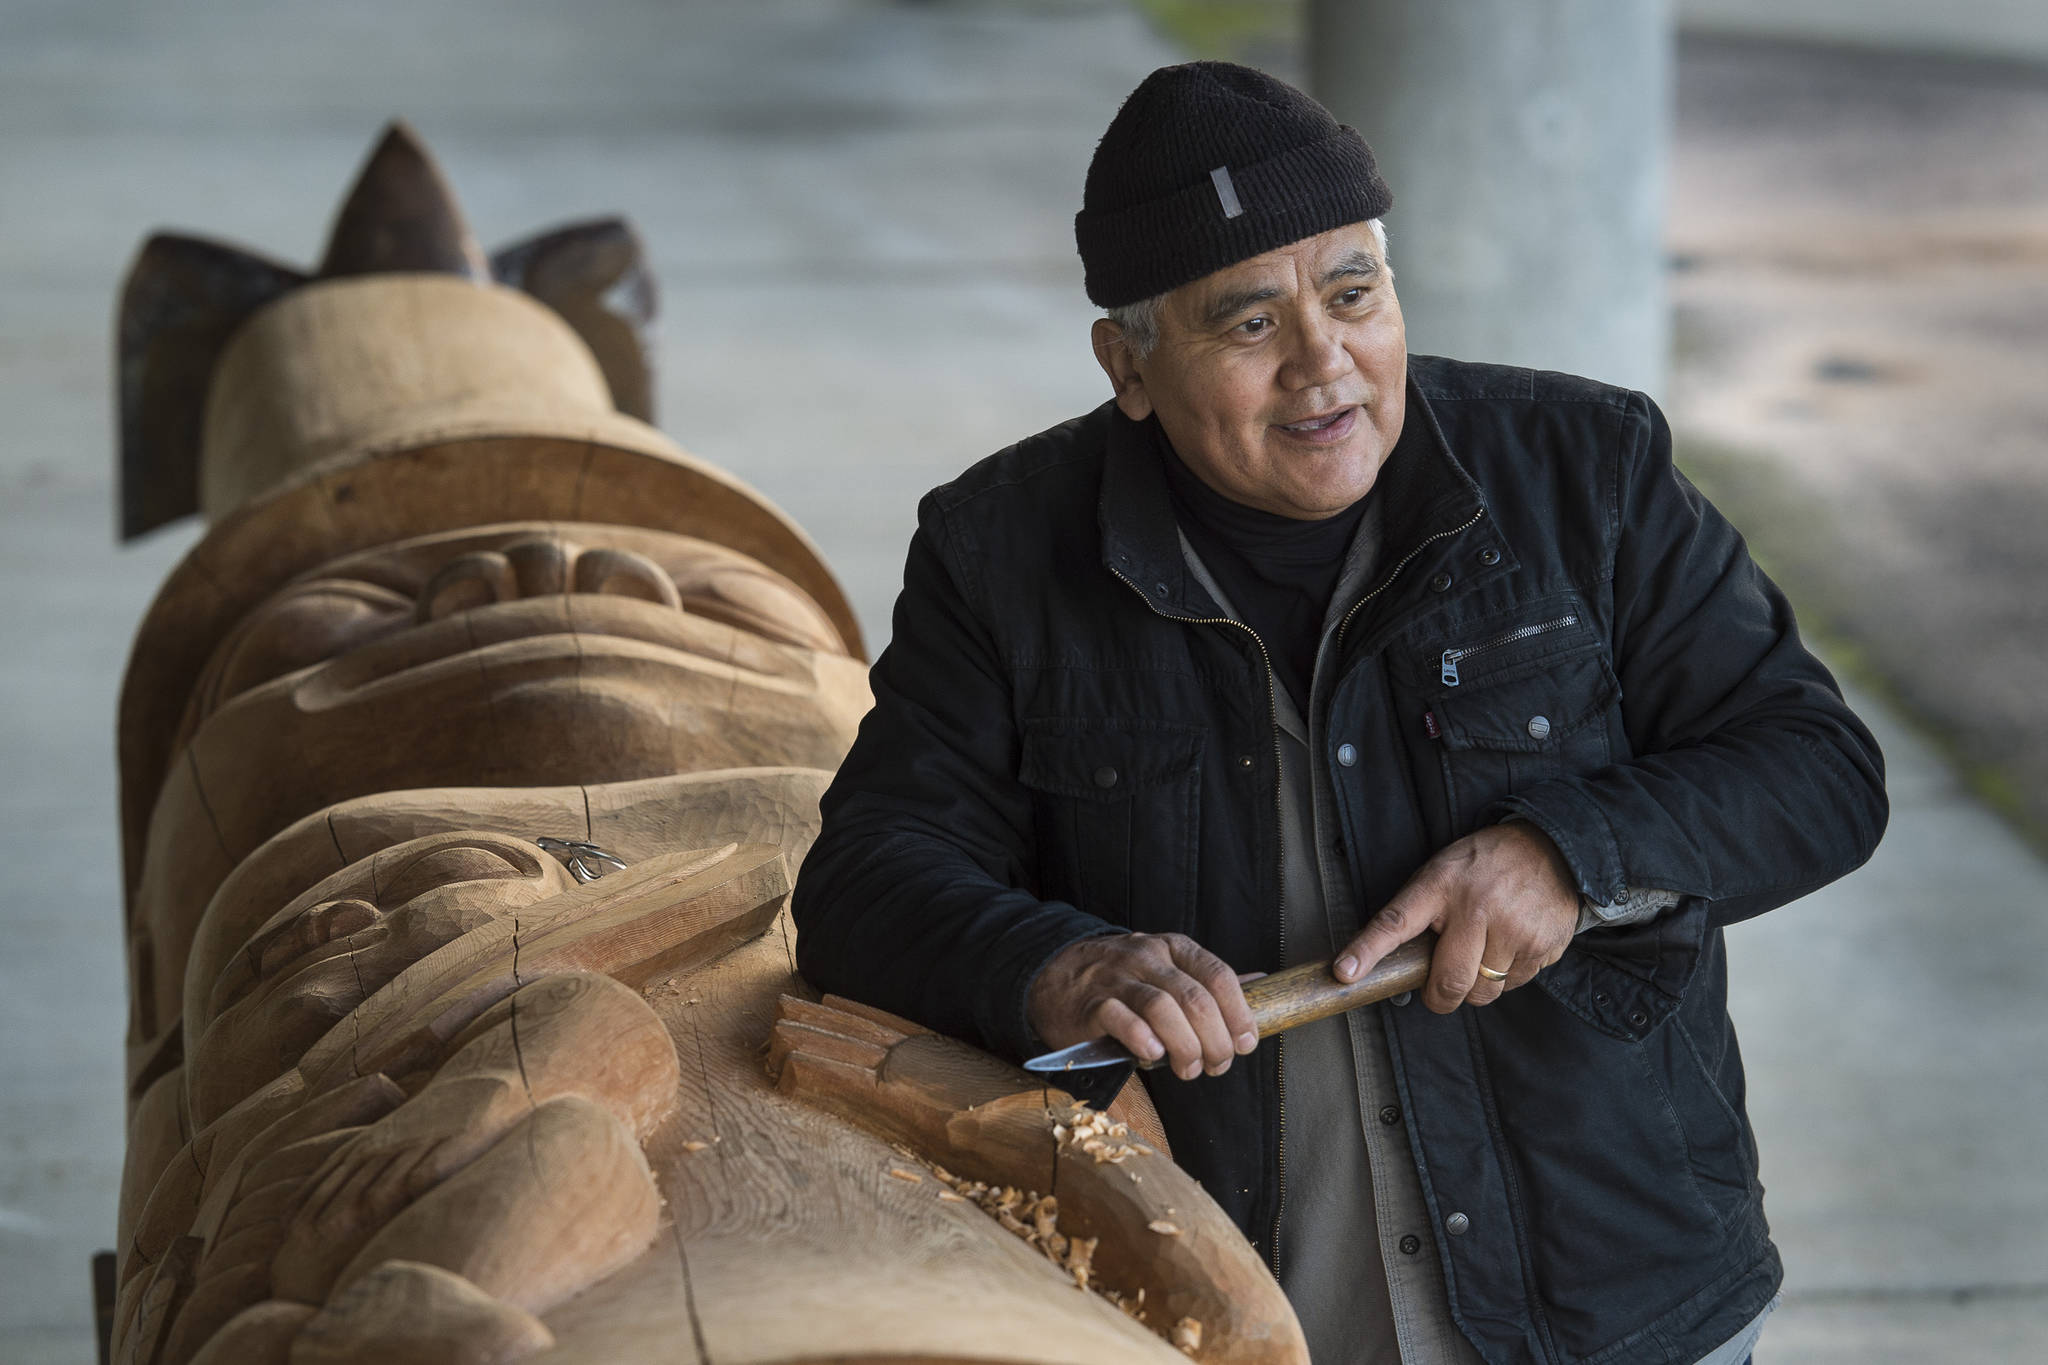 Wayne Price, master Tlingit carver and Associate Professor of Northwest Coast Arts and Sciences, works on a healing pole at the University of Alaska Southeast on Wednesday, Oct. 31, 2018. (Michael Penn   Juneau Empire)